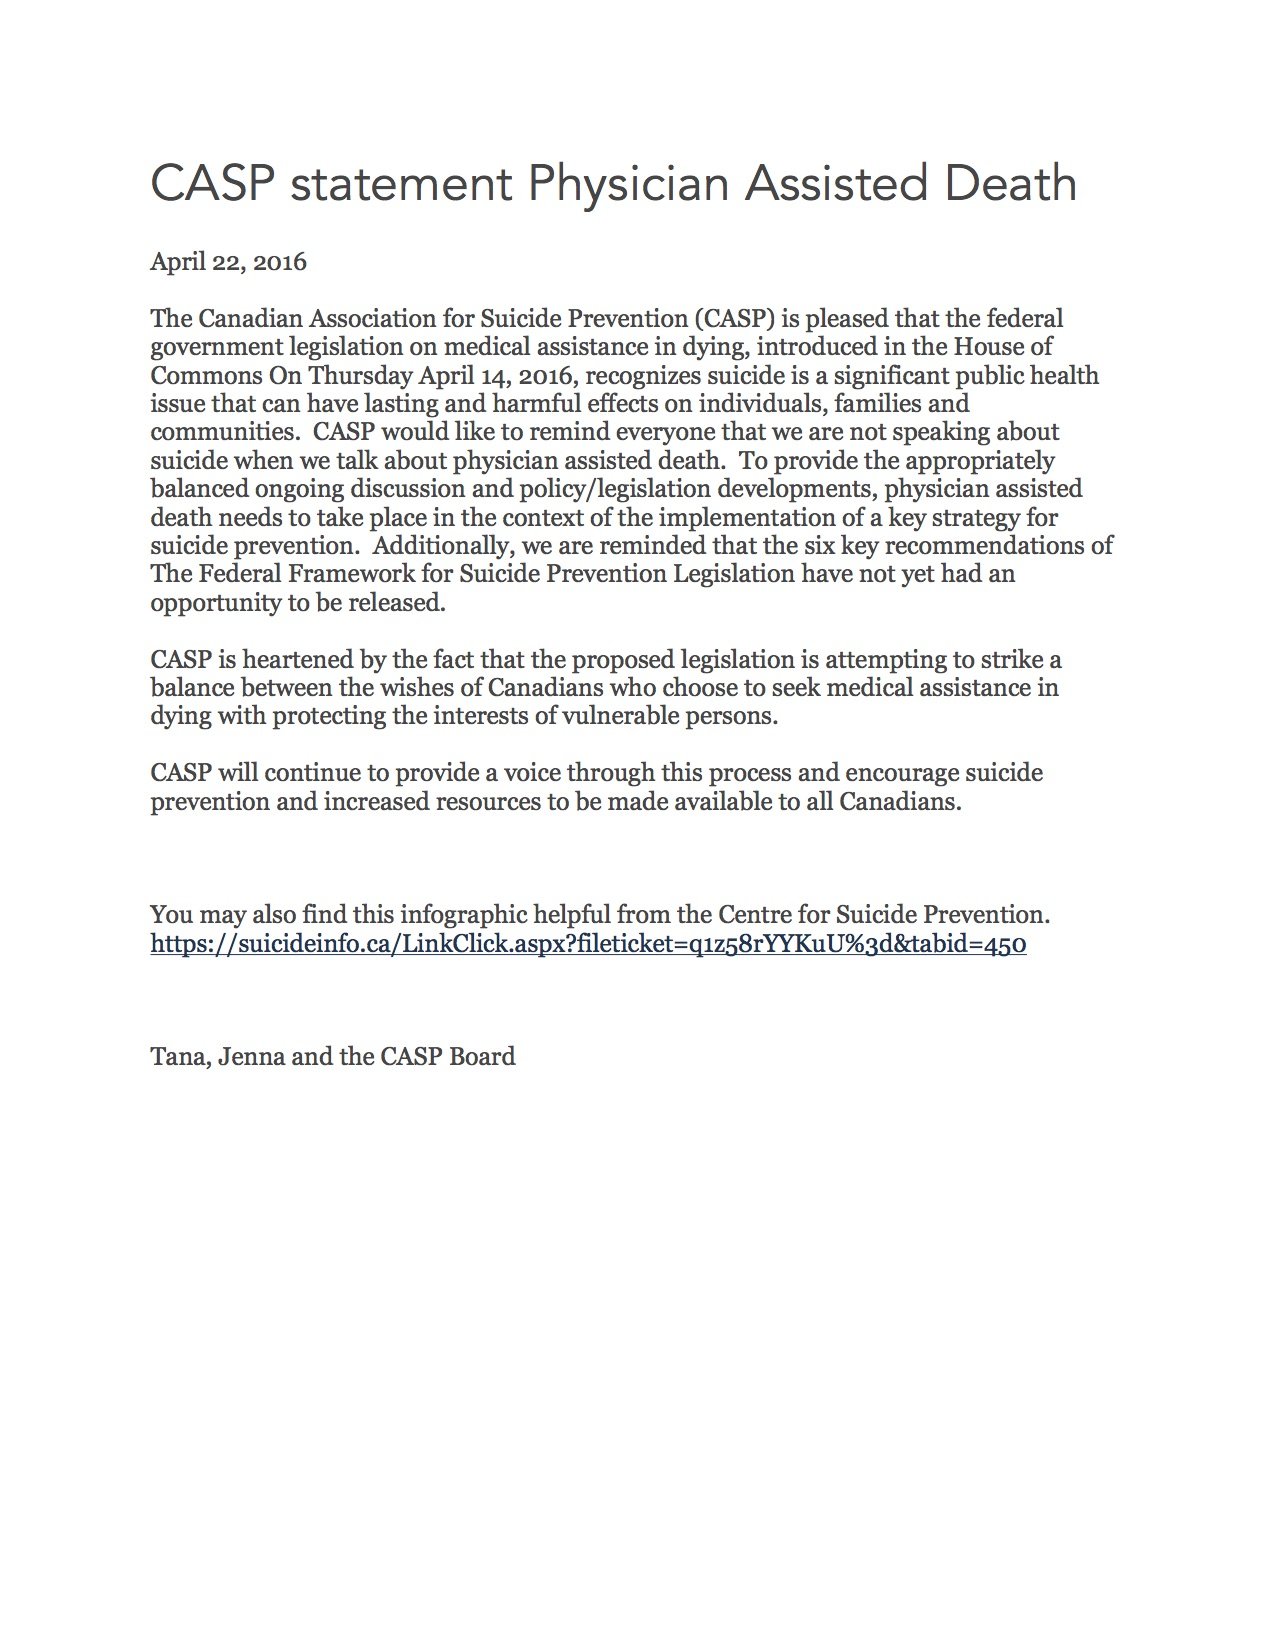 9-CASP statement Physician Assisted Death